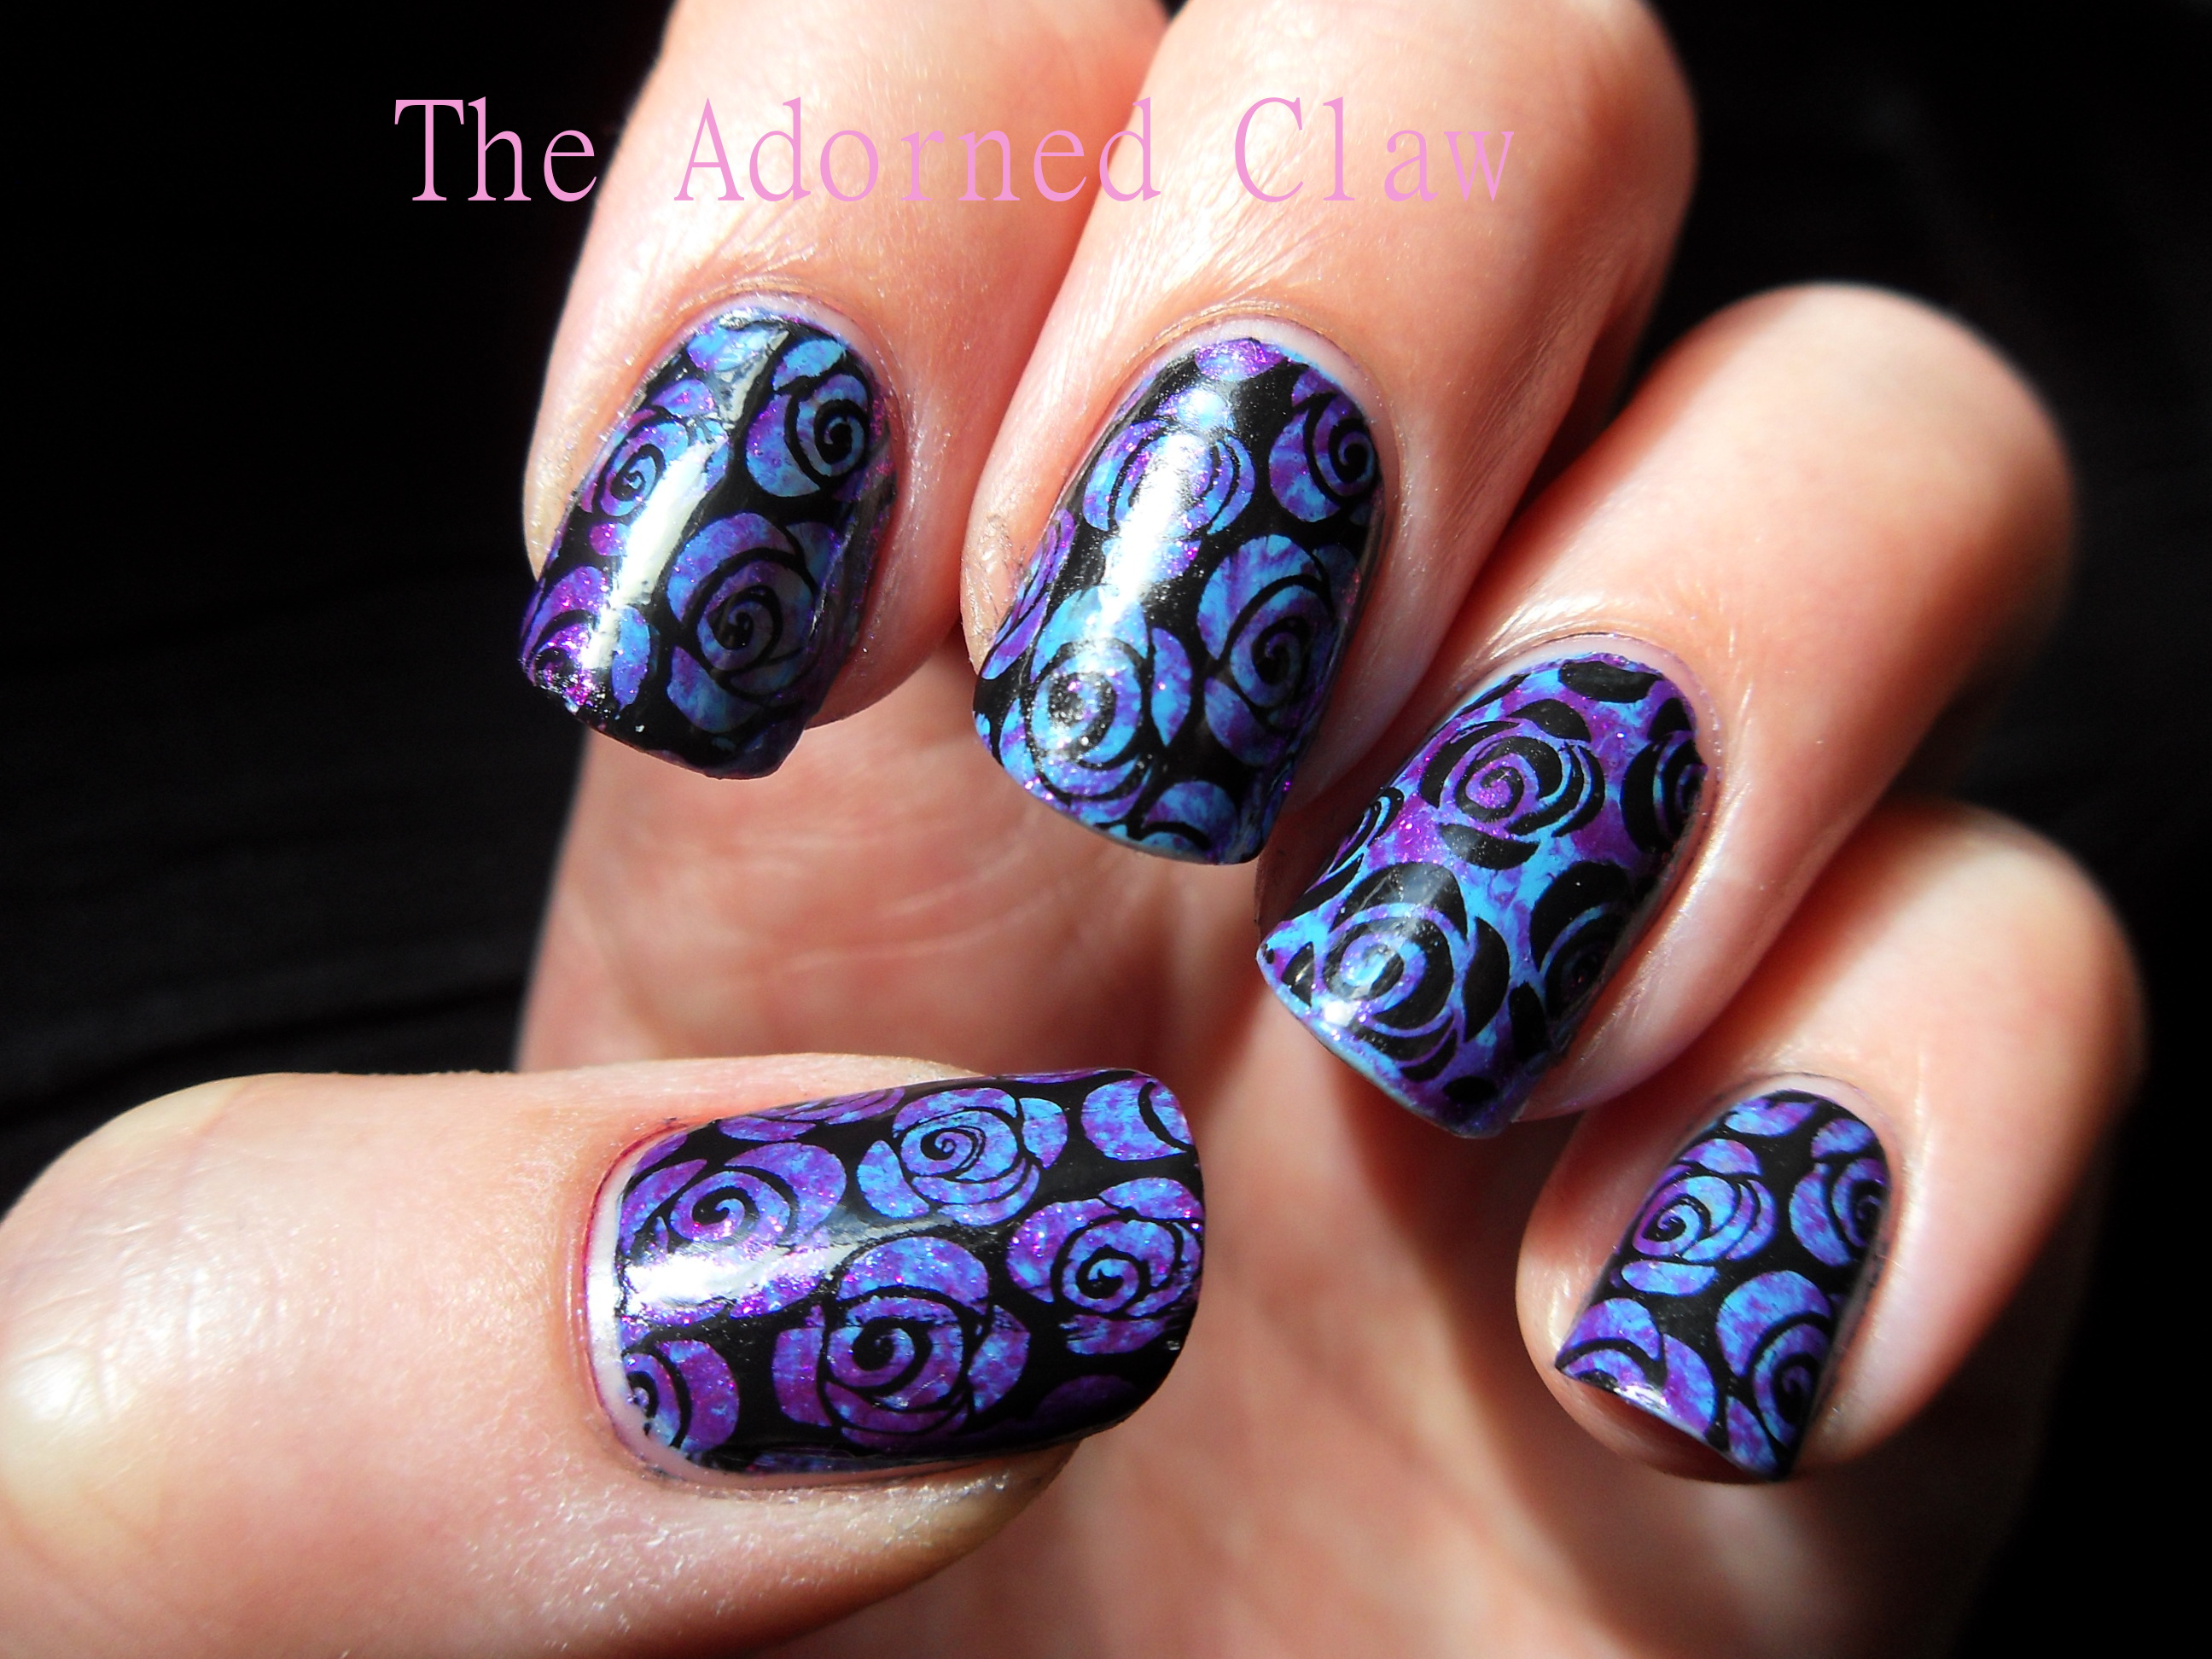 Purple and Blue Rose Nail Art | The Adorned Claw